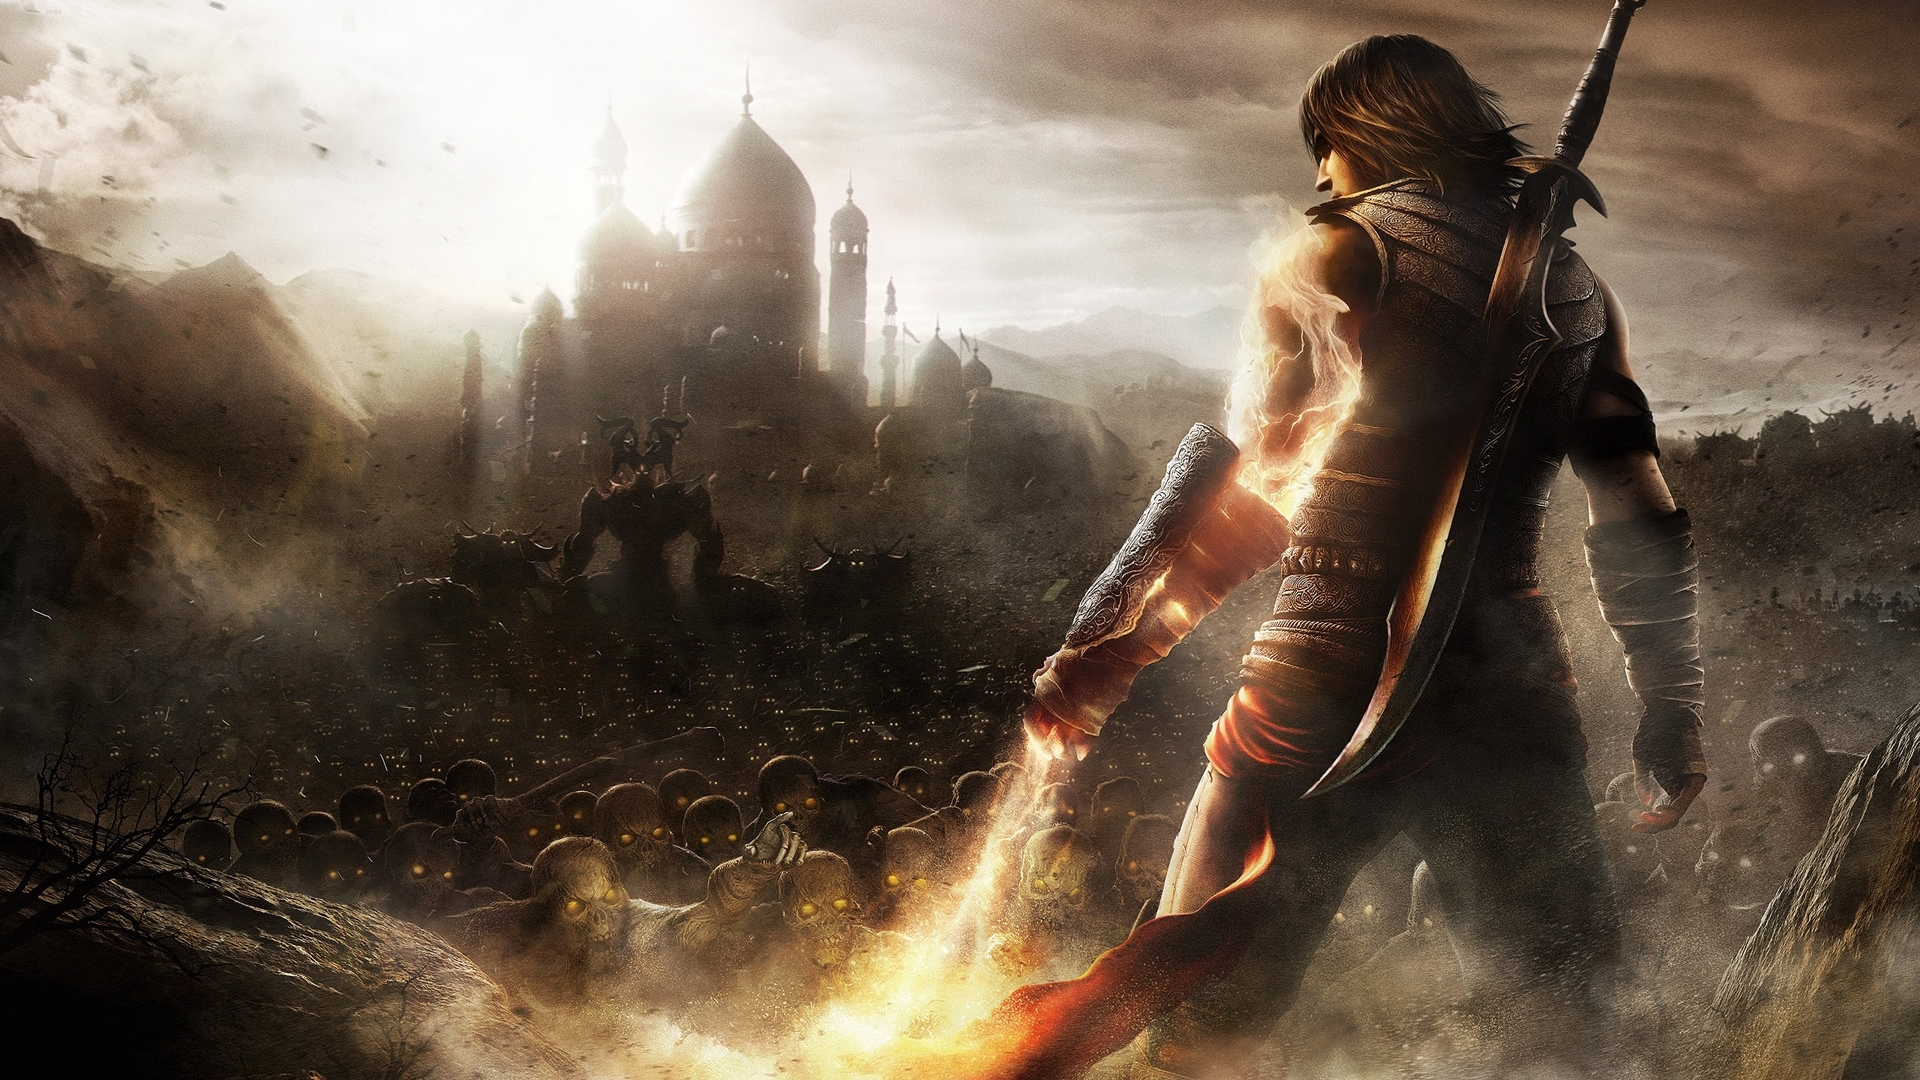 Free Download Game Widescreen Wallpapers Full Hd 1080p Games